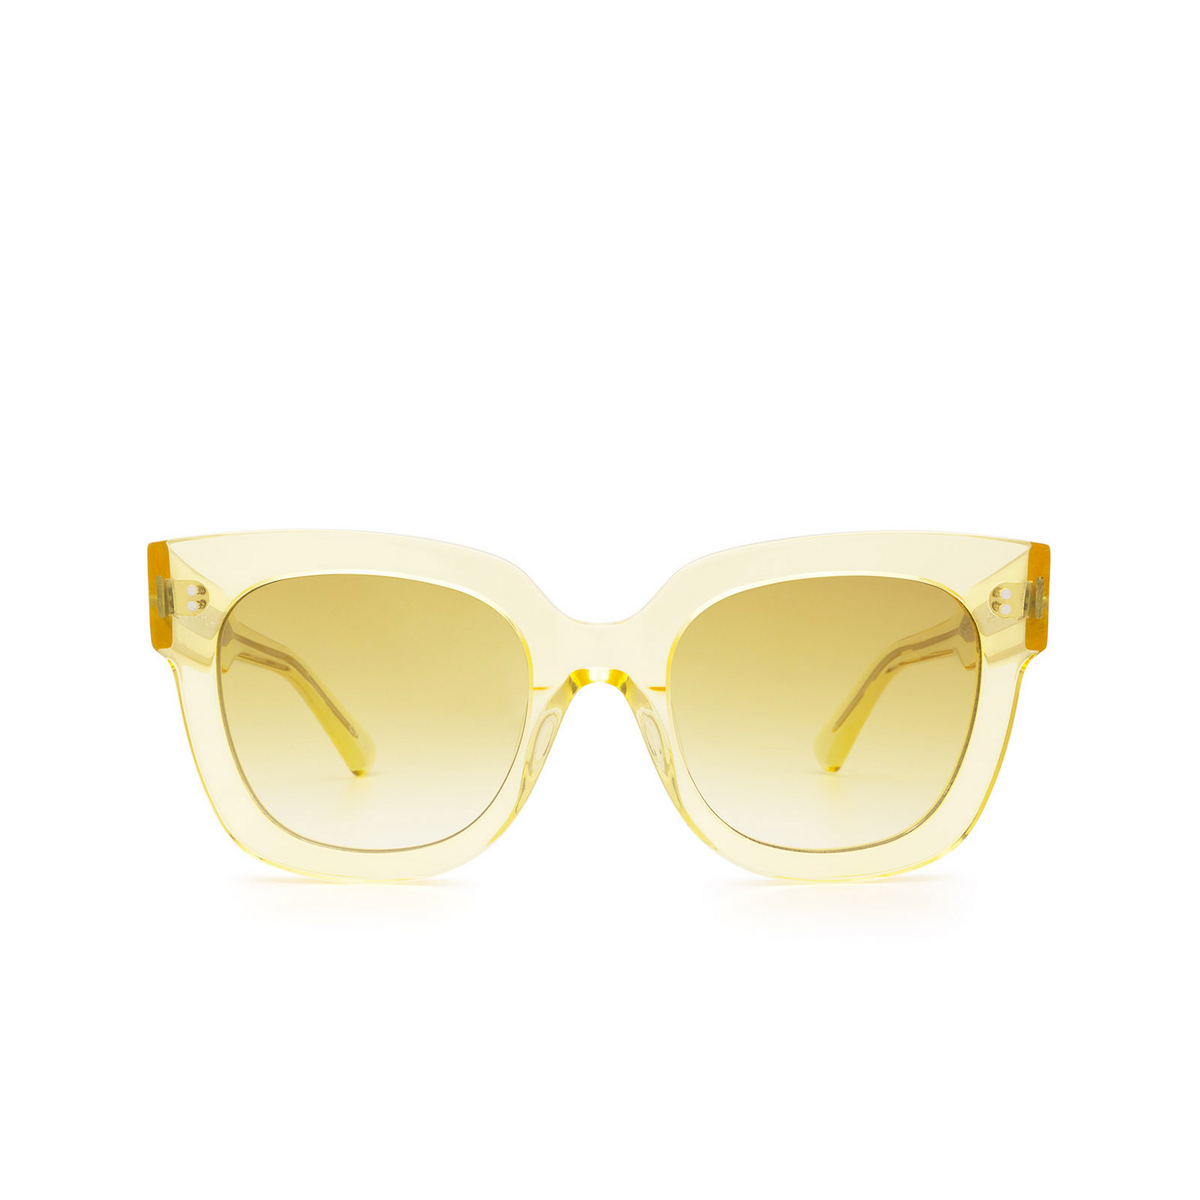 Chimi® Square Sunglasses: 08 color Yellow - front view.